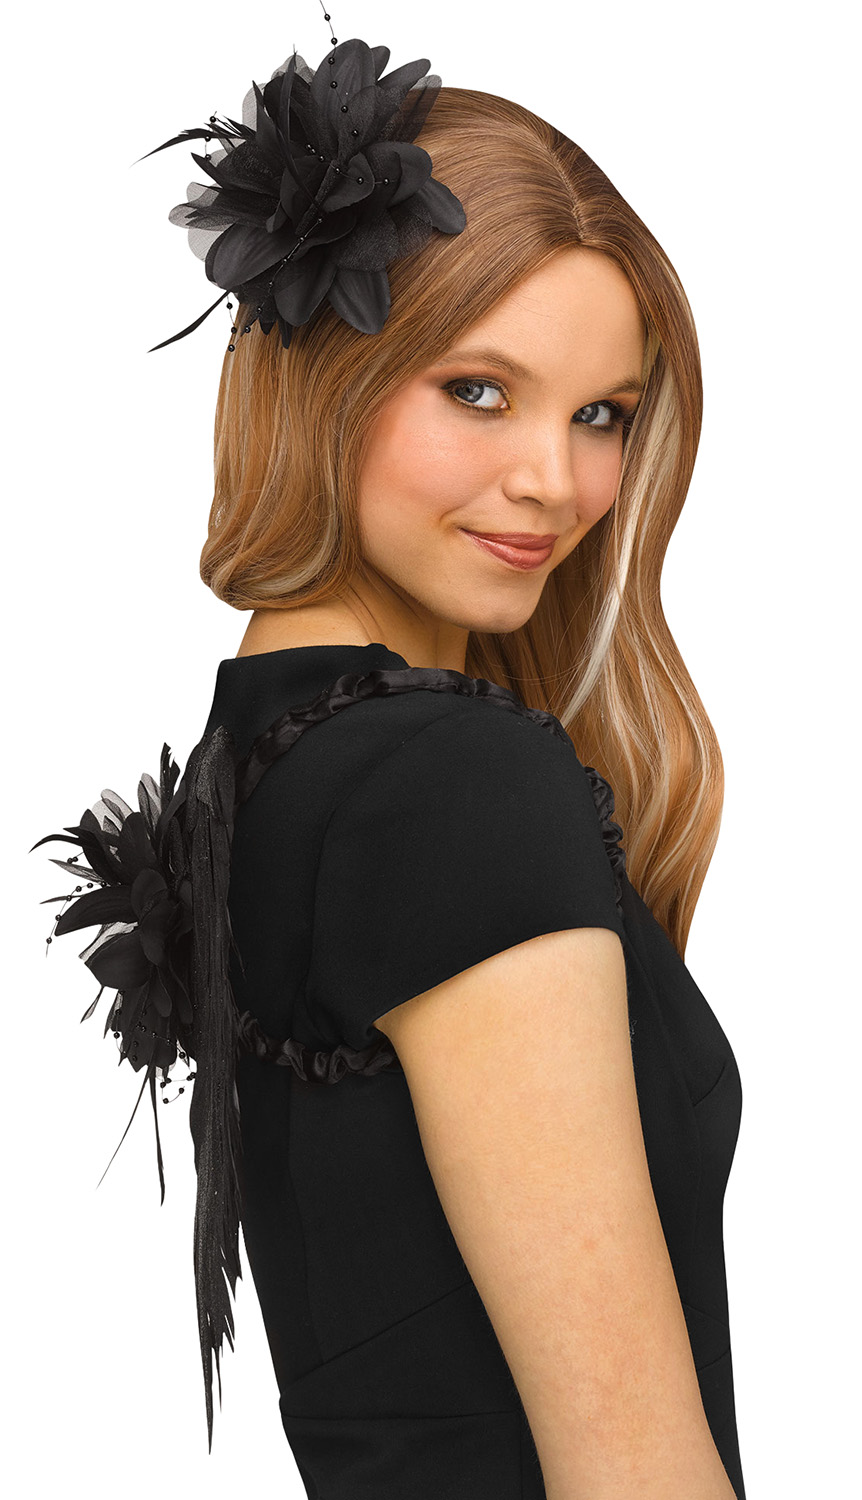 thumbnail 3 - Deluxe-Womens-Small-Glittery-Feather-Angel-Wings-Halloween-Costume-Accessory